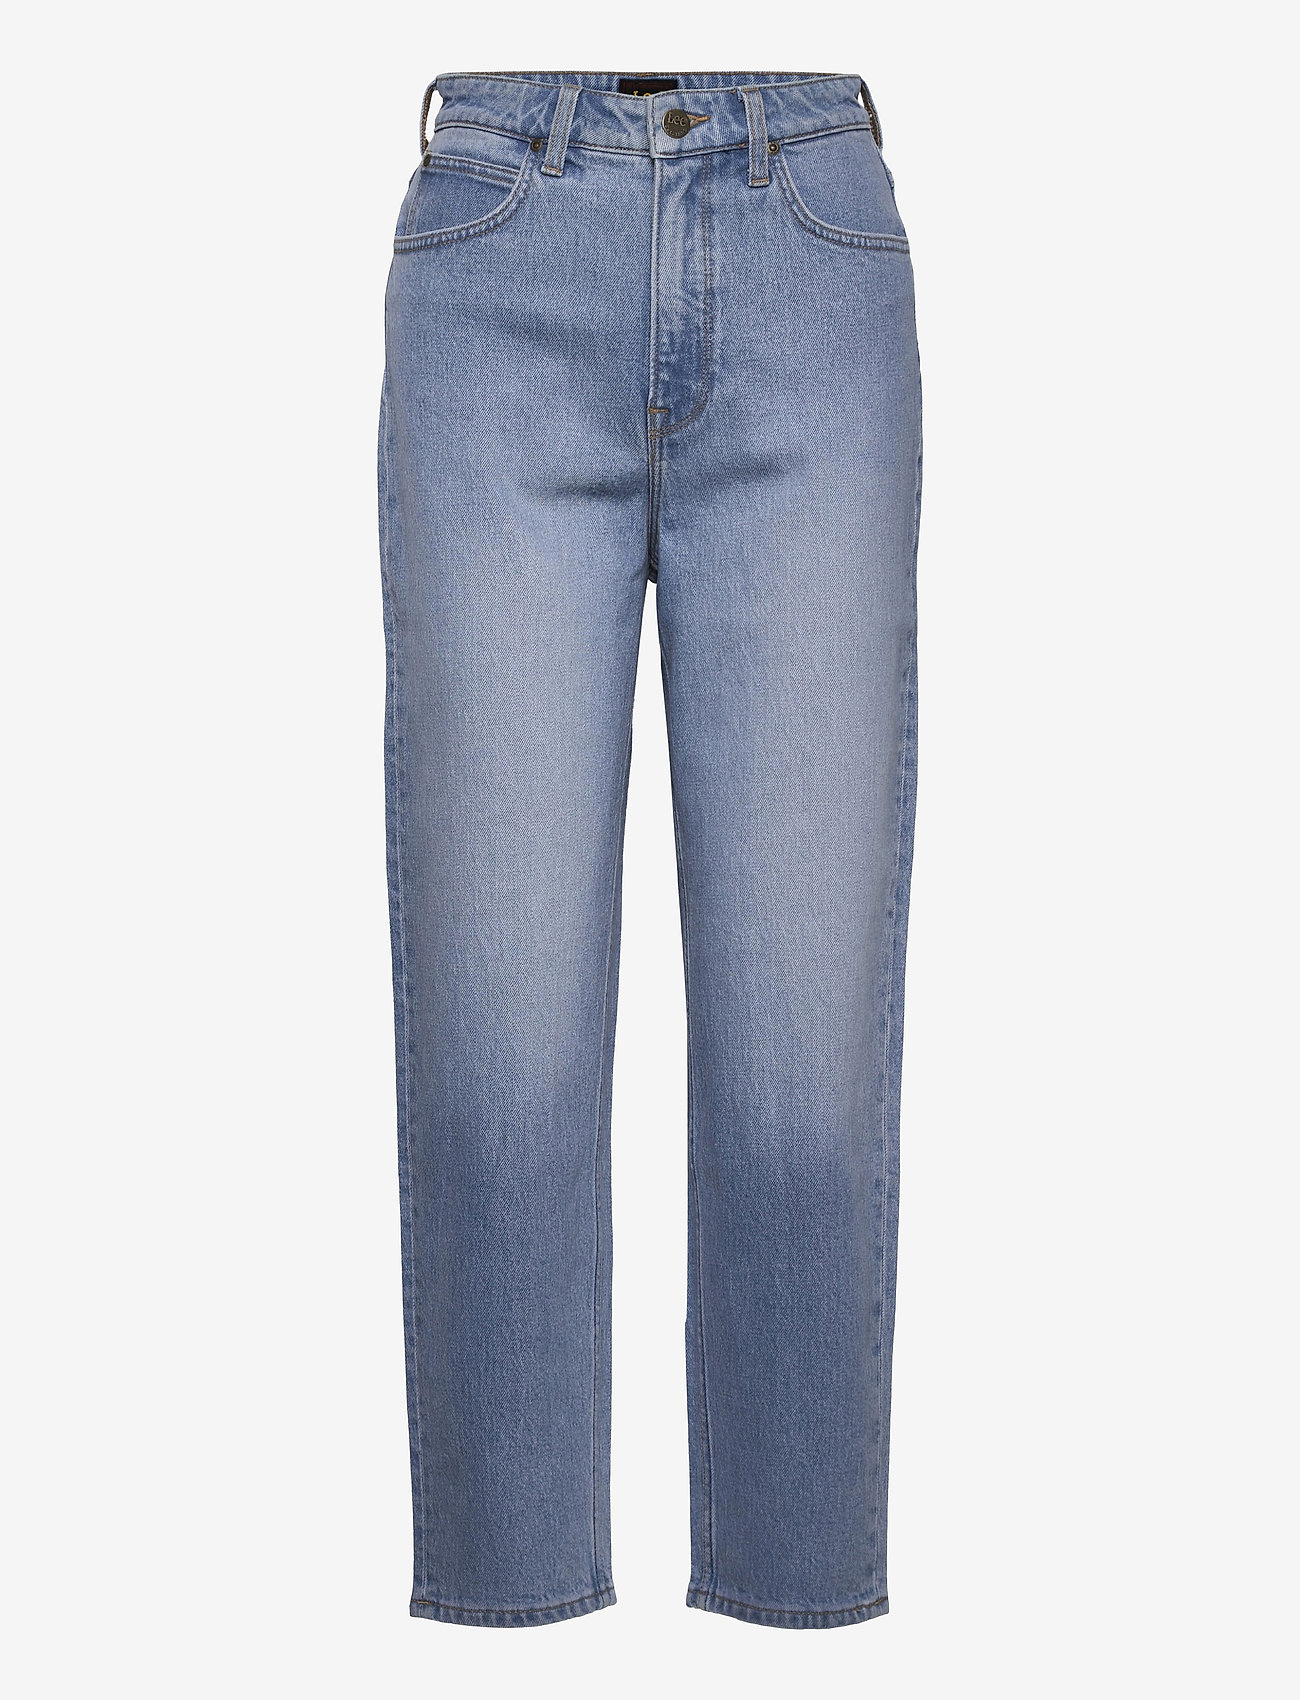 Lee Jeans - STELLA TAPERED - straight jeans - lt new hill - 0